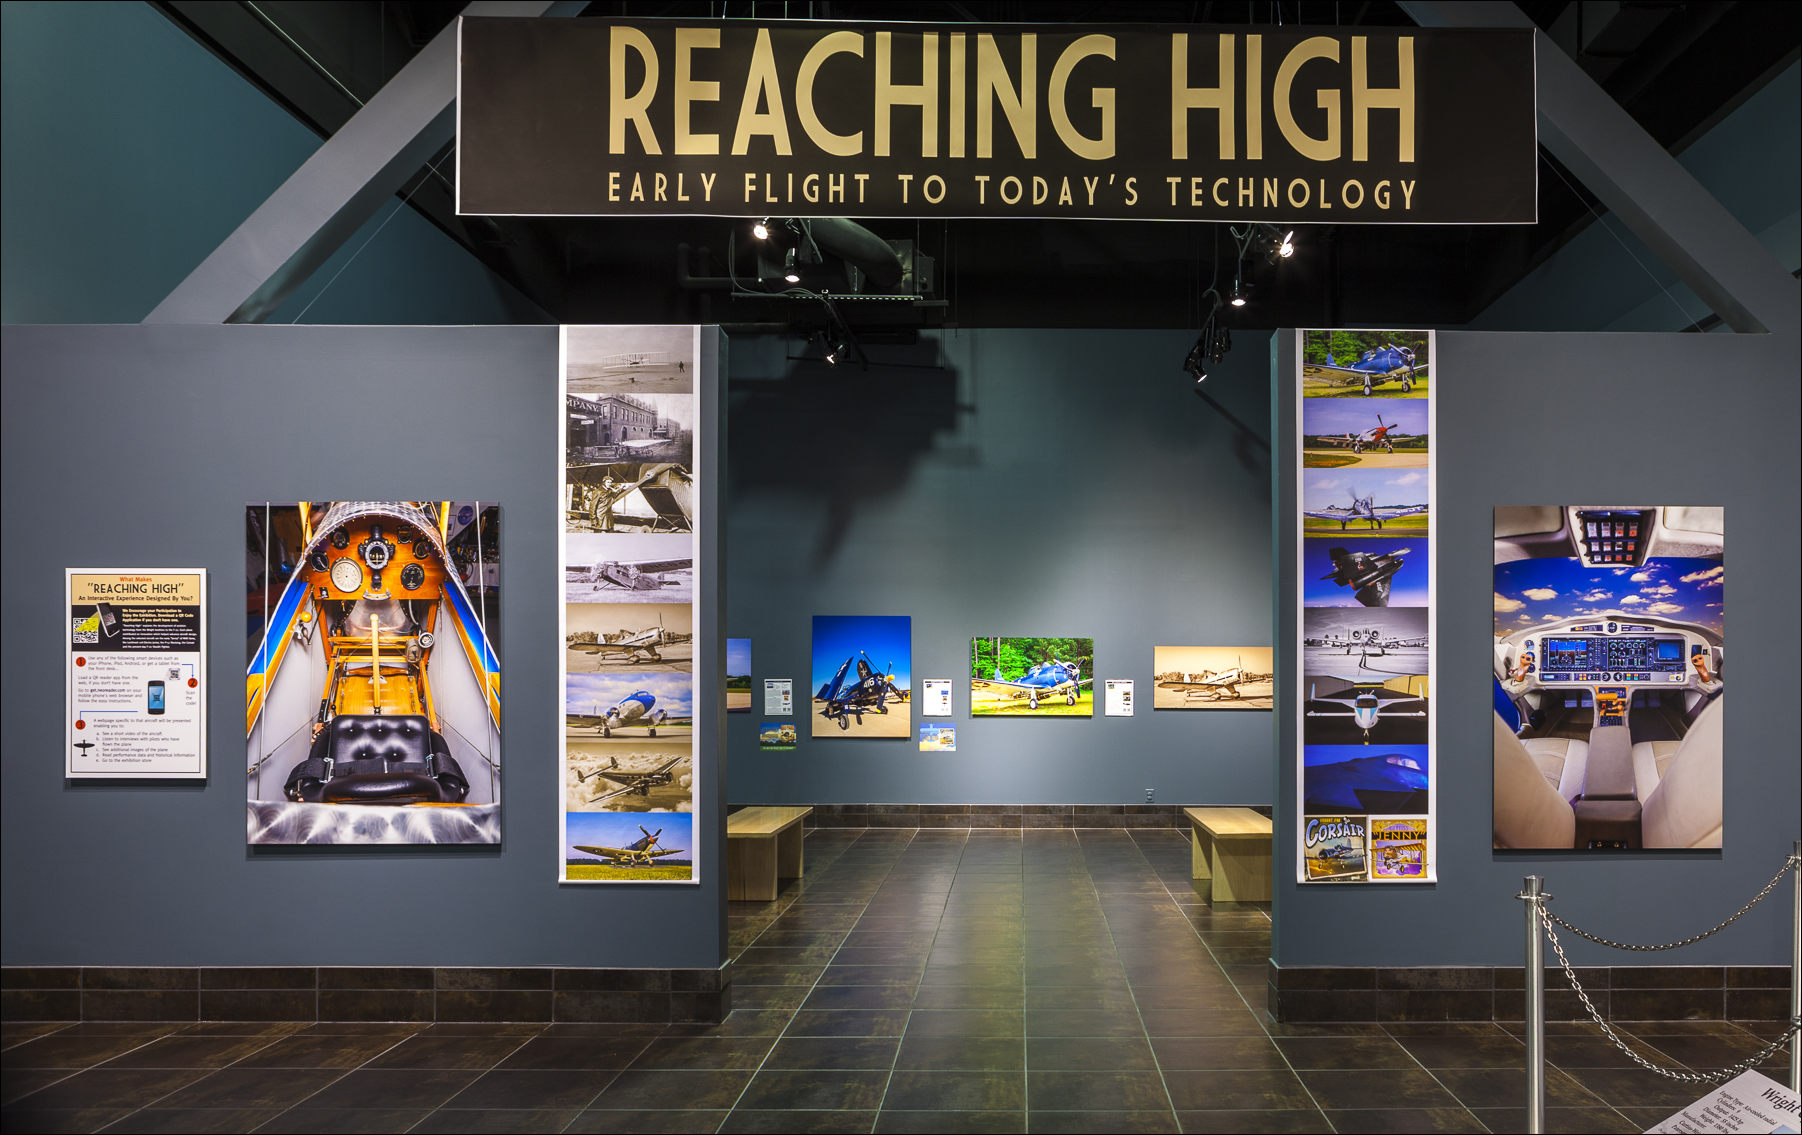 Reaching High installation at the Tellus Science Museum in Cartersville, Georgia. ©2013 John Slemp